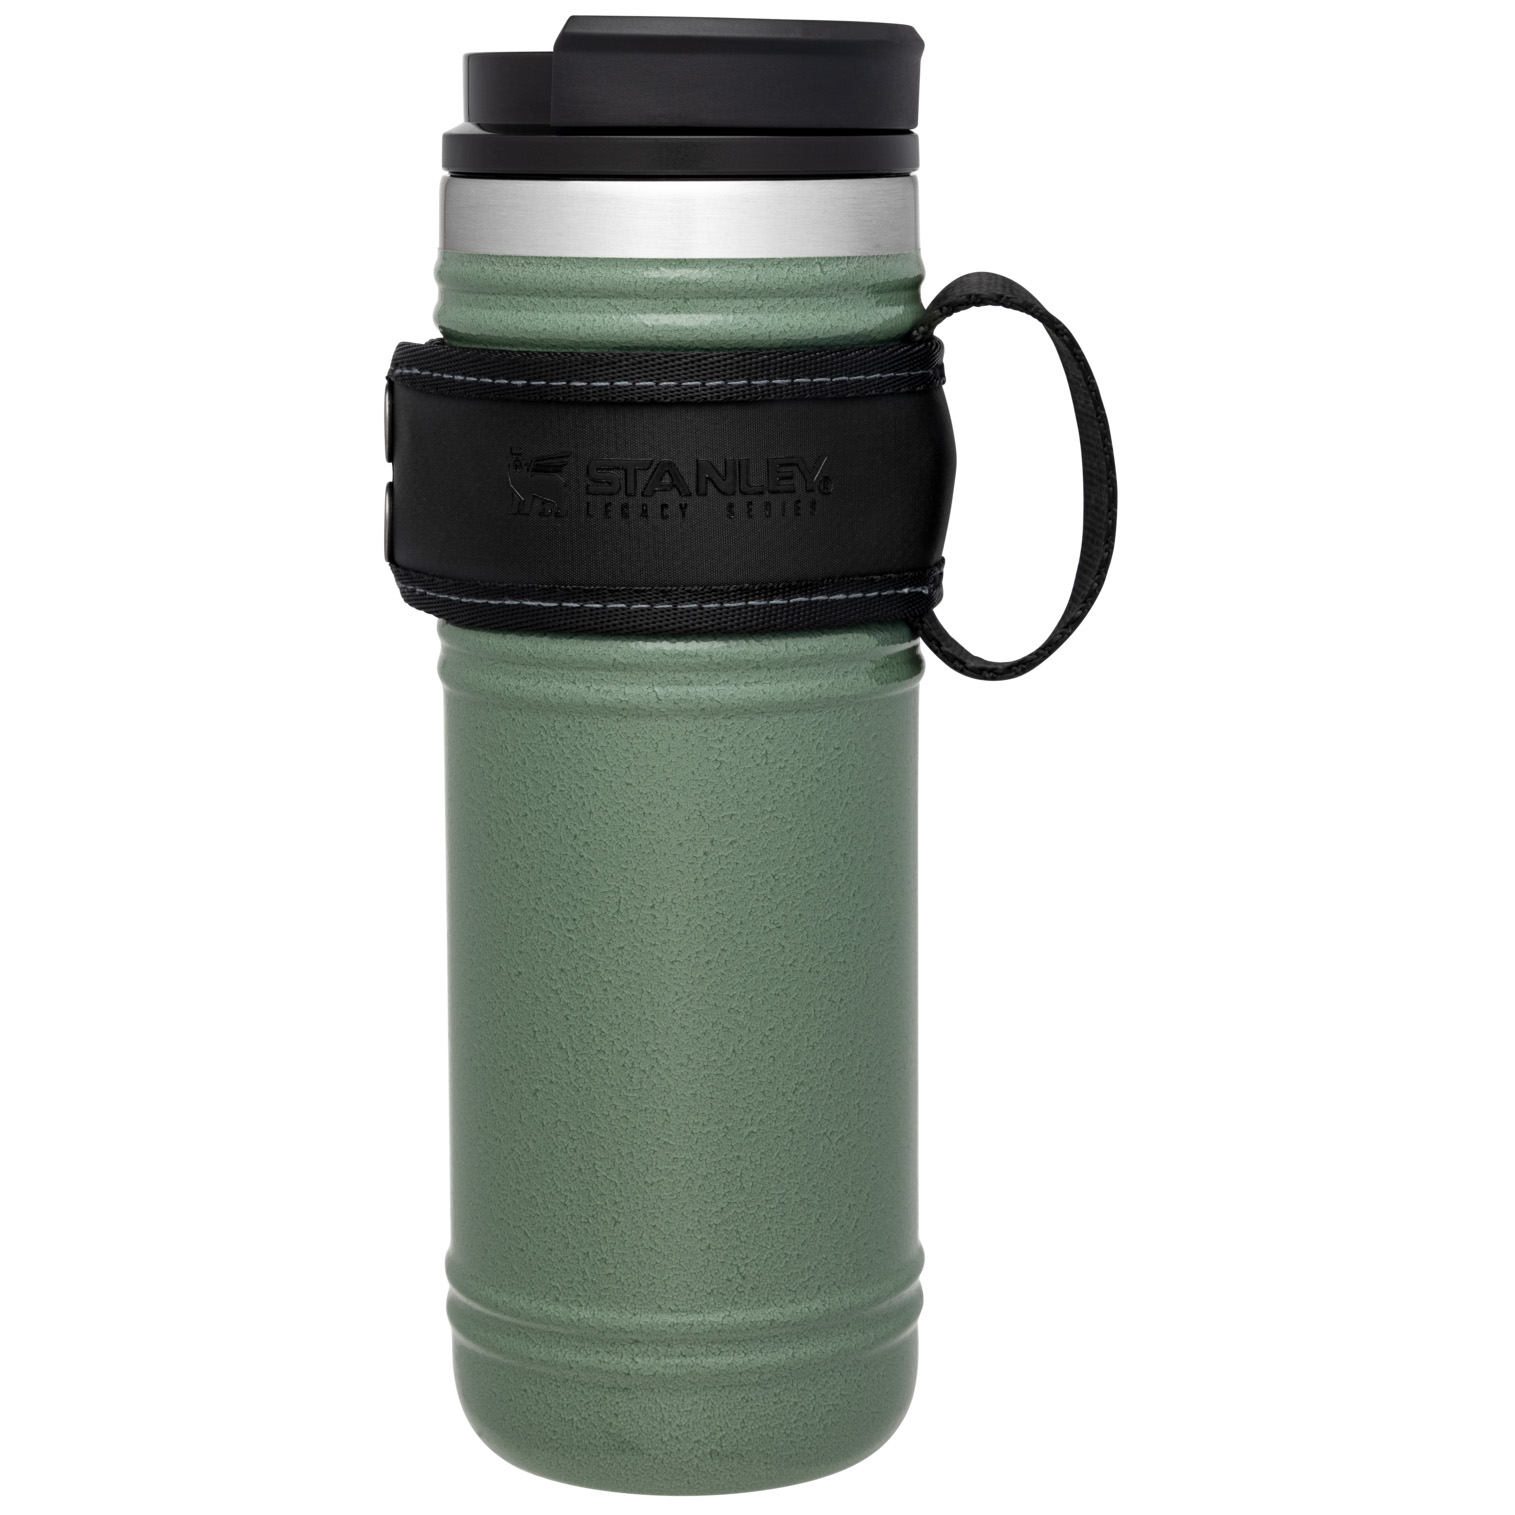 Stanley Legacy Neverleak™ Travel Mug | 16 oz – H.Green